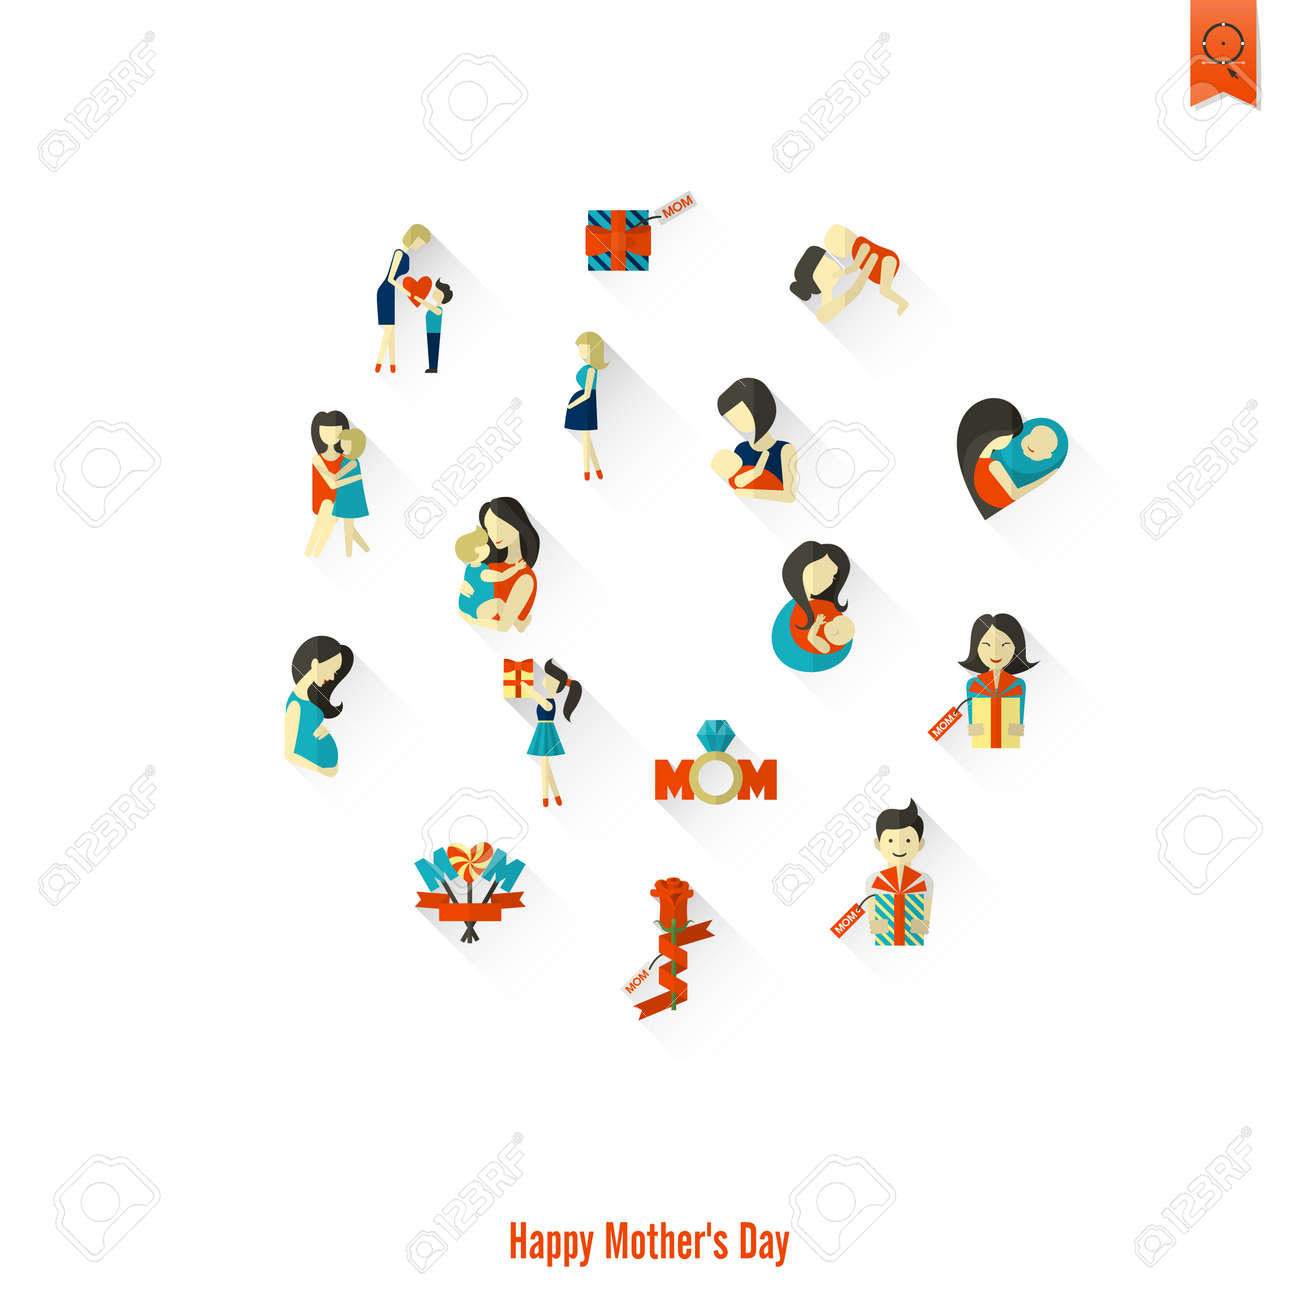 hight resolution of happy mothers day clip art design icon set stock vector 88688948